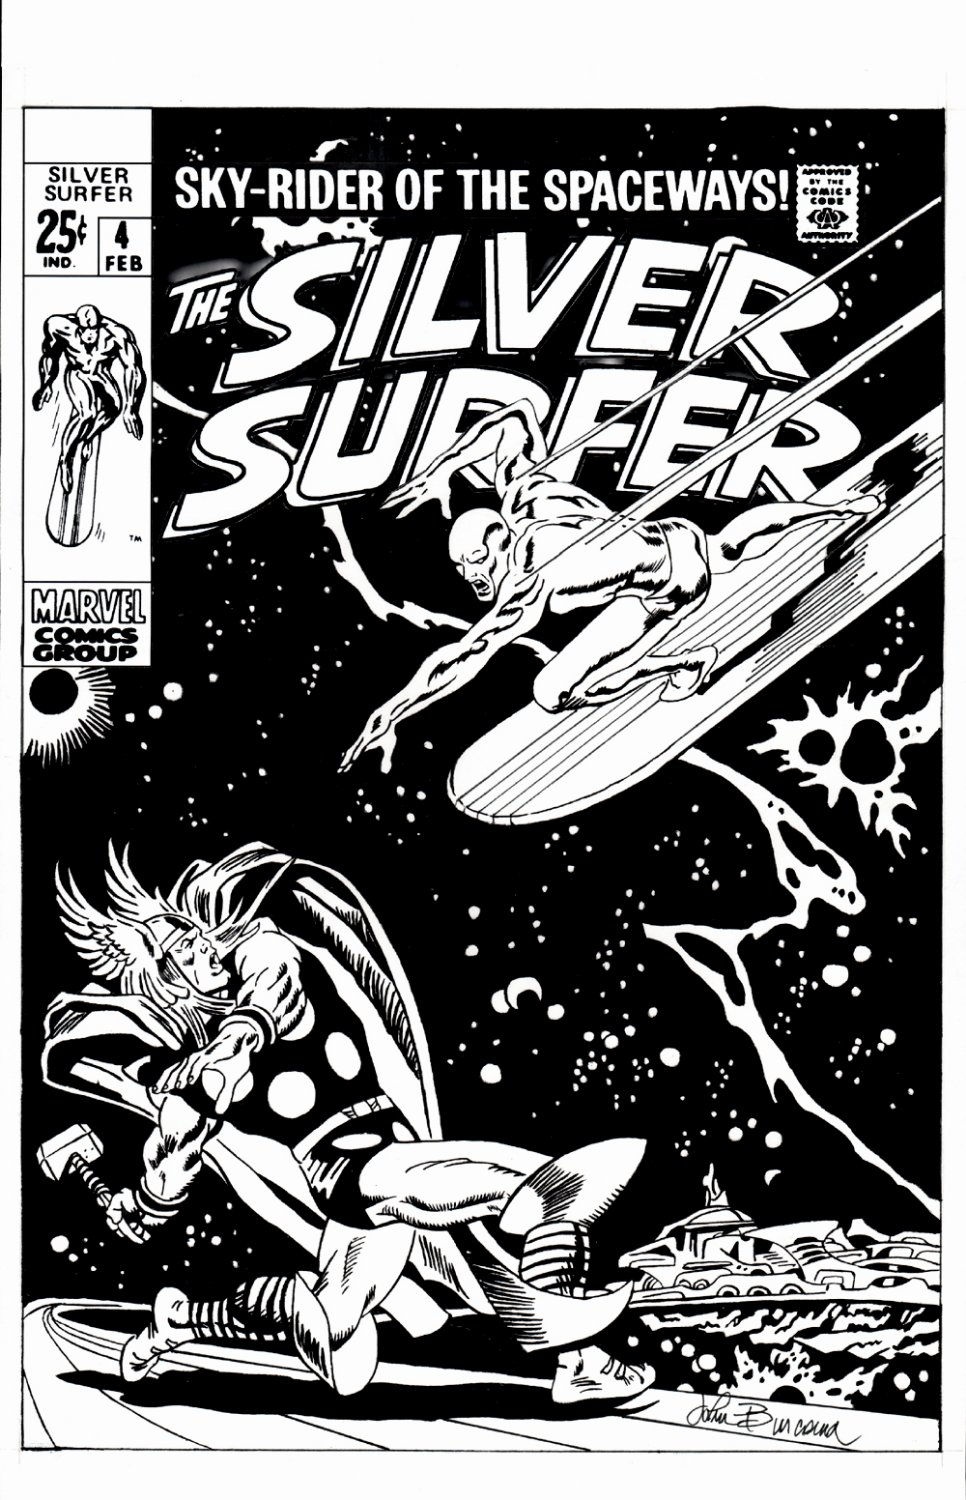 Silver Surfer #4 Cover Recreation (ARGUABLY THE MOST REMEMBERED JOHN BUSCEMA COVER!) 1990s